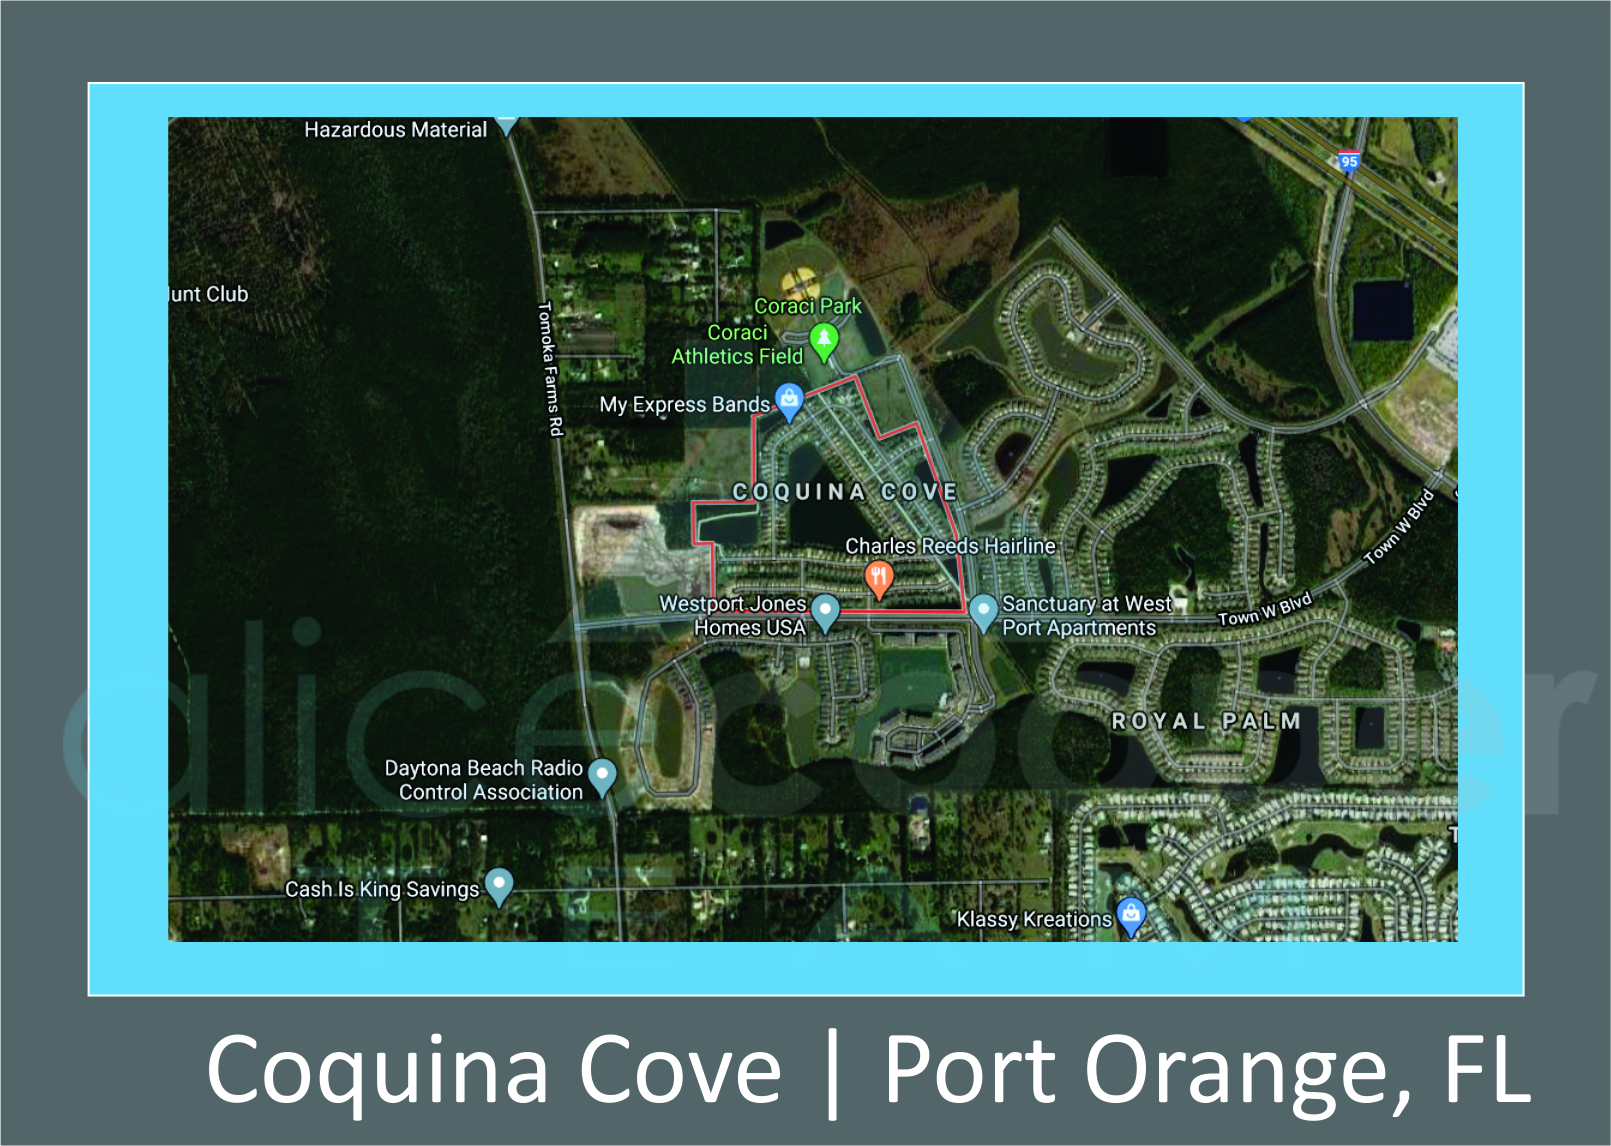 Map of Coquina Cove, Port Orange, FL